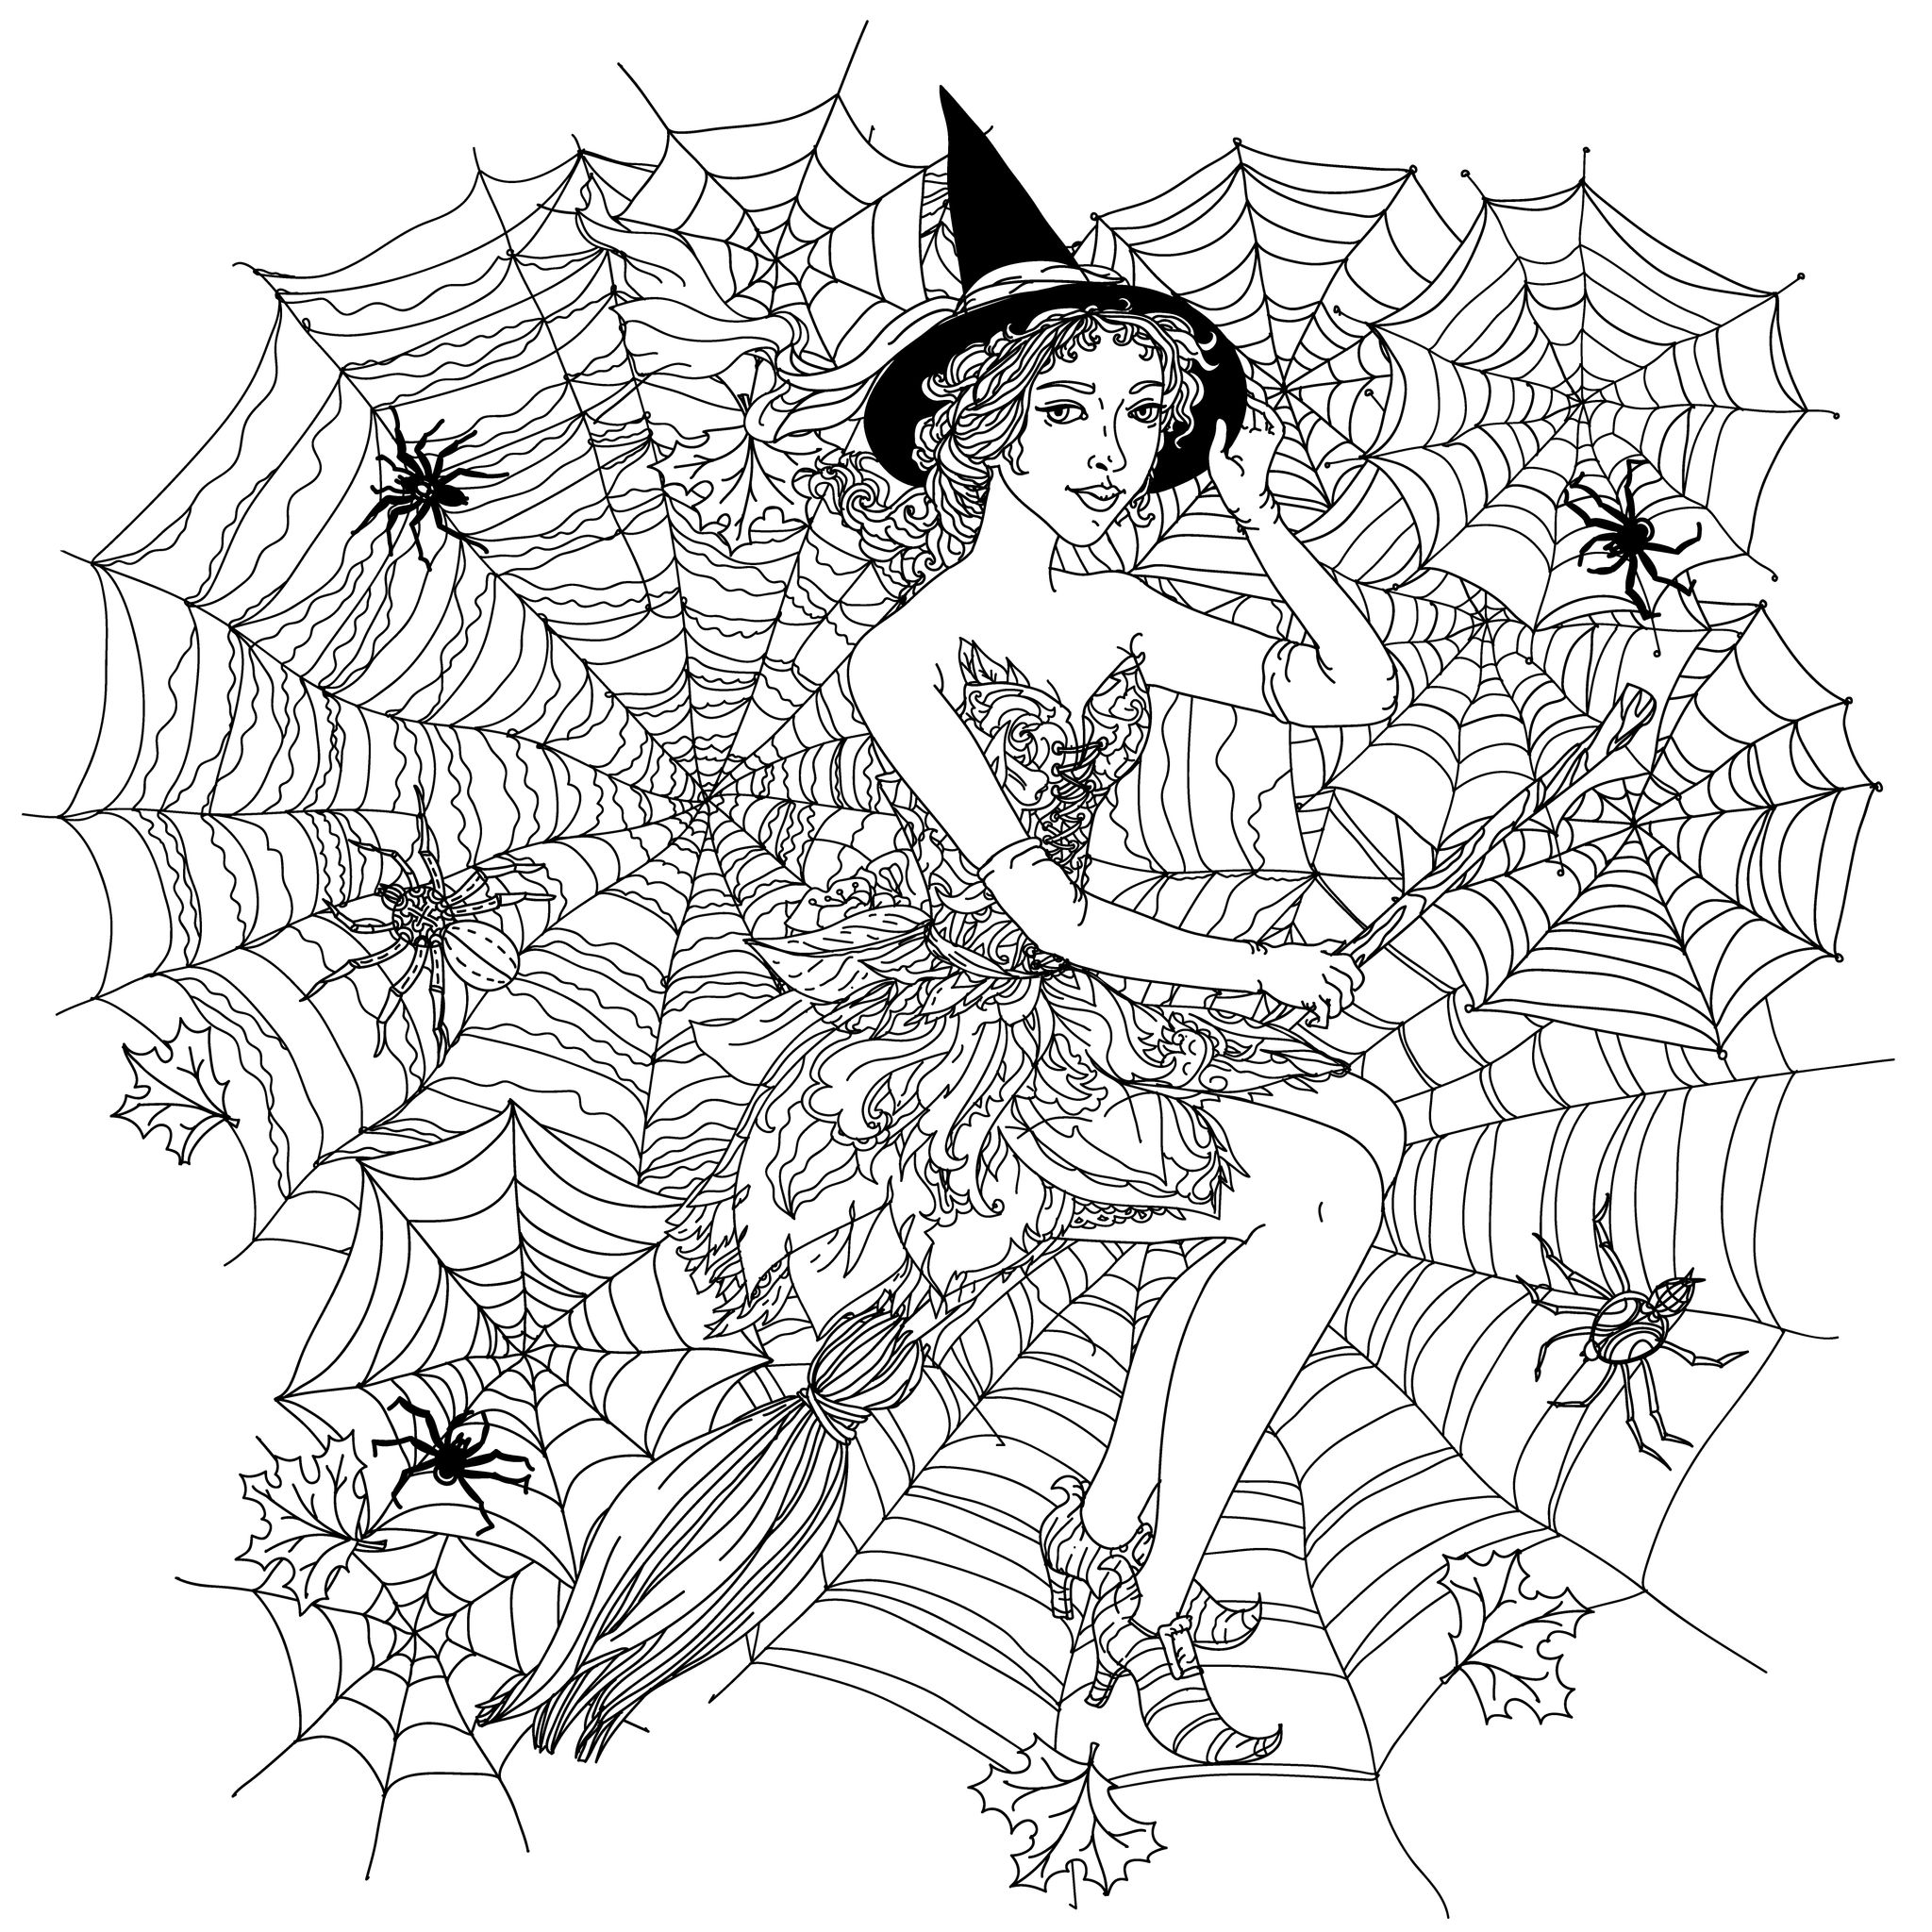 46314974 - beautiful fashion woman as a witch with design with cobwebs, spiders and other decorations on halloween, could be used for coloring book. black and white in zentangle style.